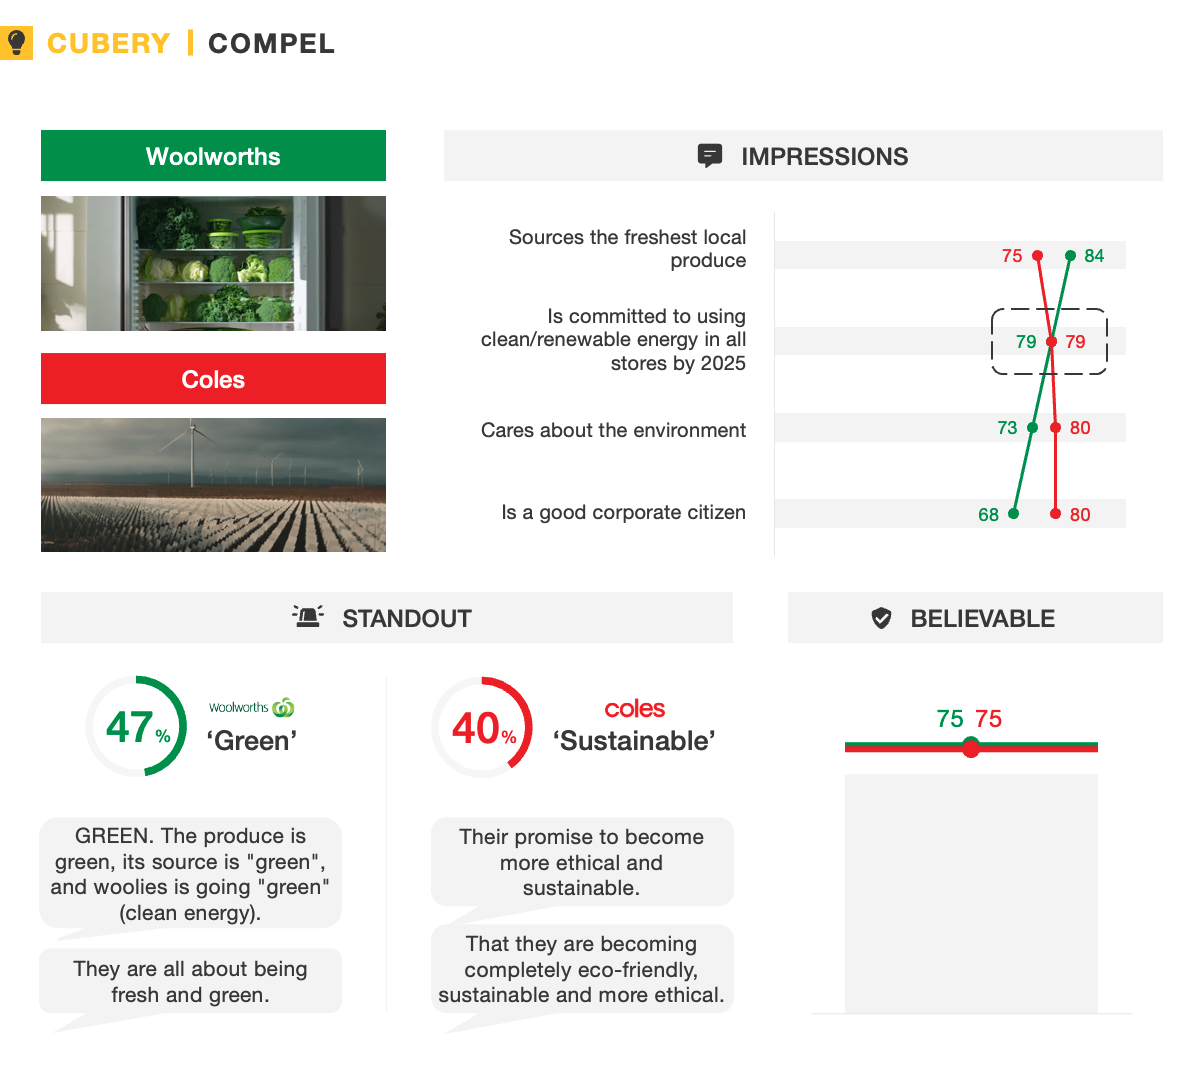 Woolworths and Coles Sustainability Advertising Testing - Compel